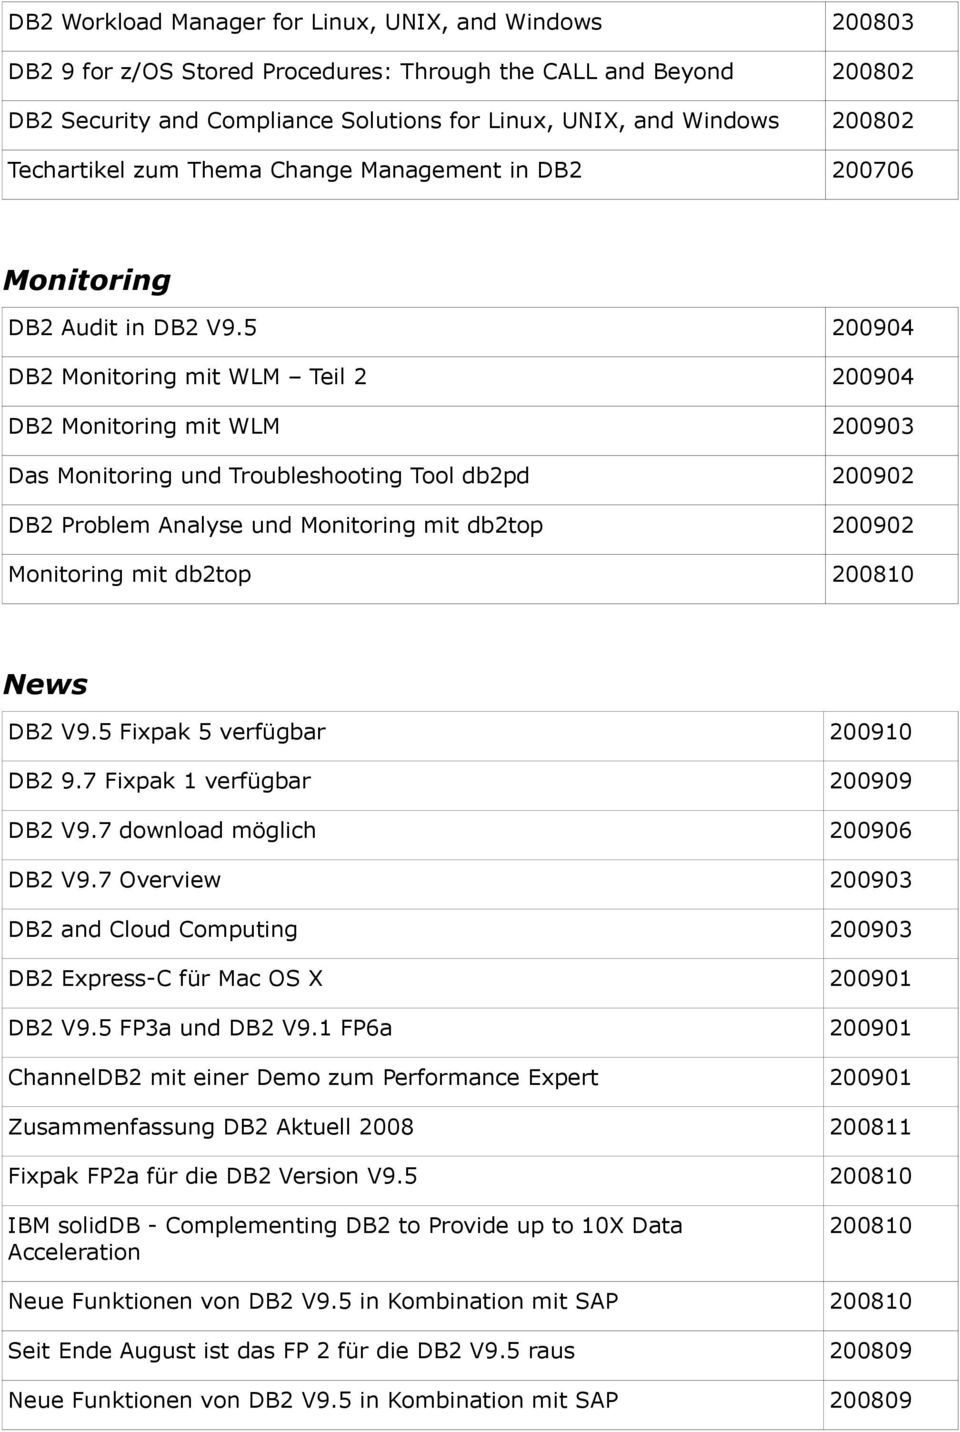 5 200904 DB2 Monitoring mit WLM Teil 2 200904 DB2 Monitoring mit WLM 200903 Das Monitoring und Troubleshooting Tool db2pd 200902 DB2 Problem Analyse und Monitoring mit db2top 200902 Monitoring mit